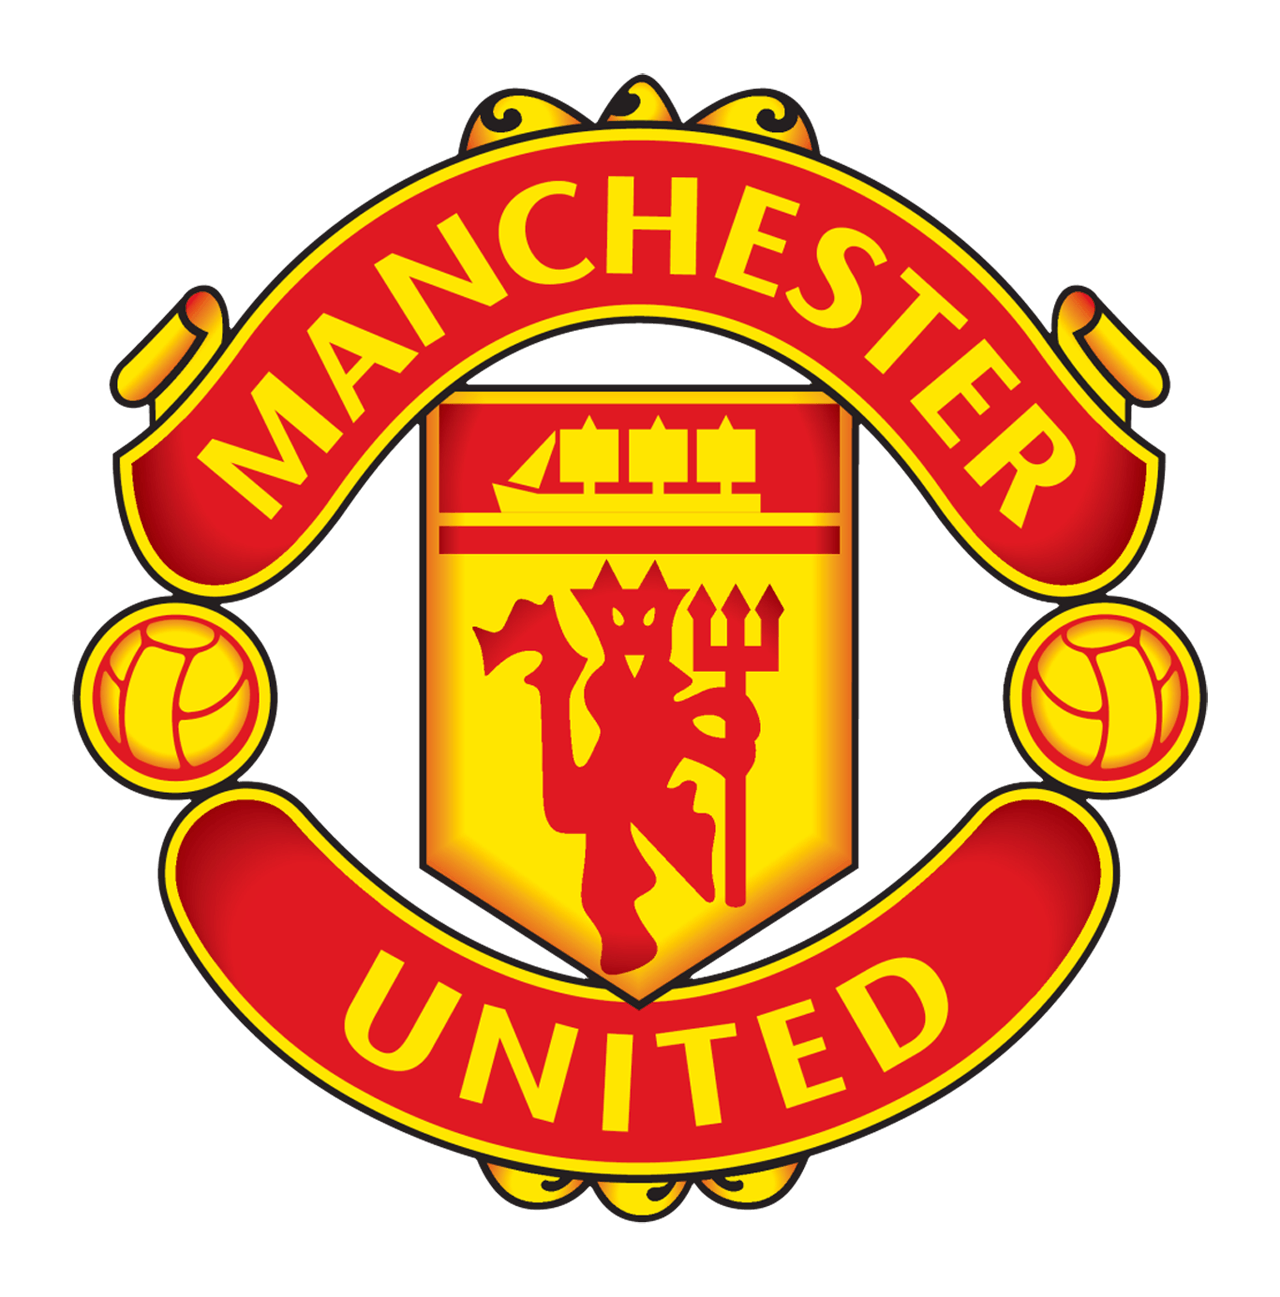 Manchester united logo clipart banner free library Manchester United Logo transparent PNG - StickPNG banner free library